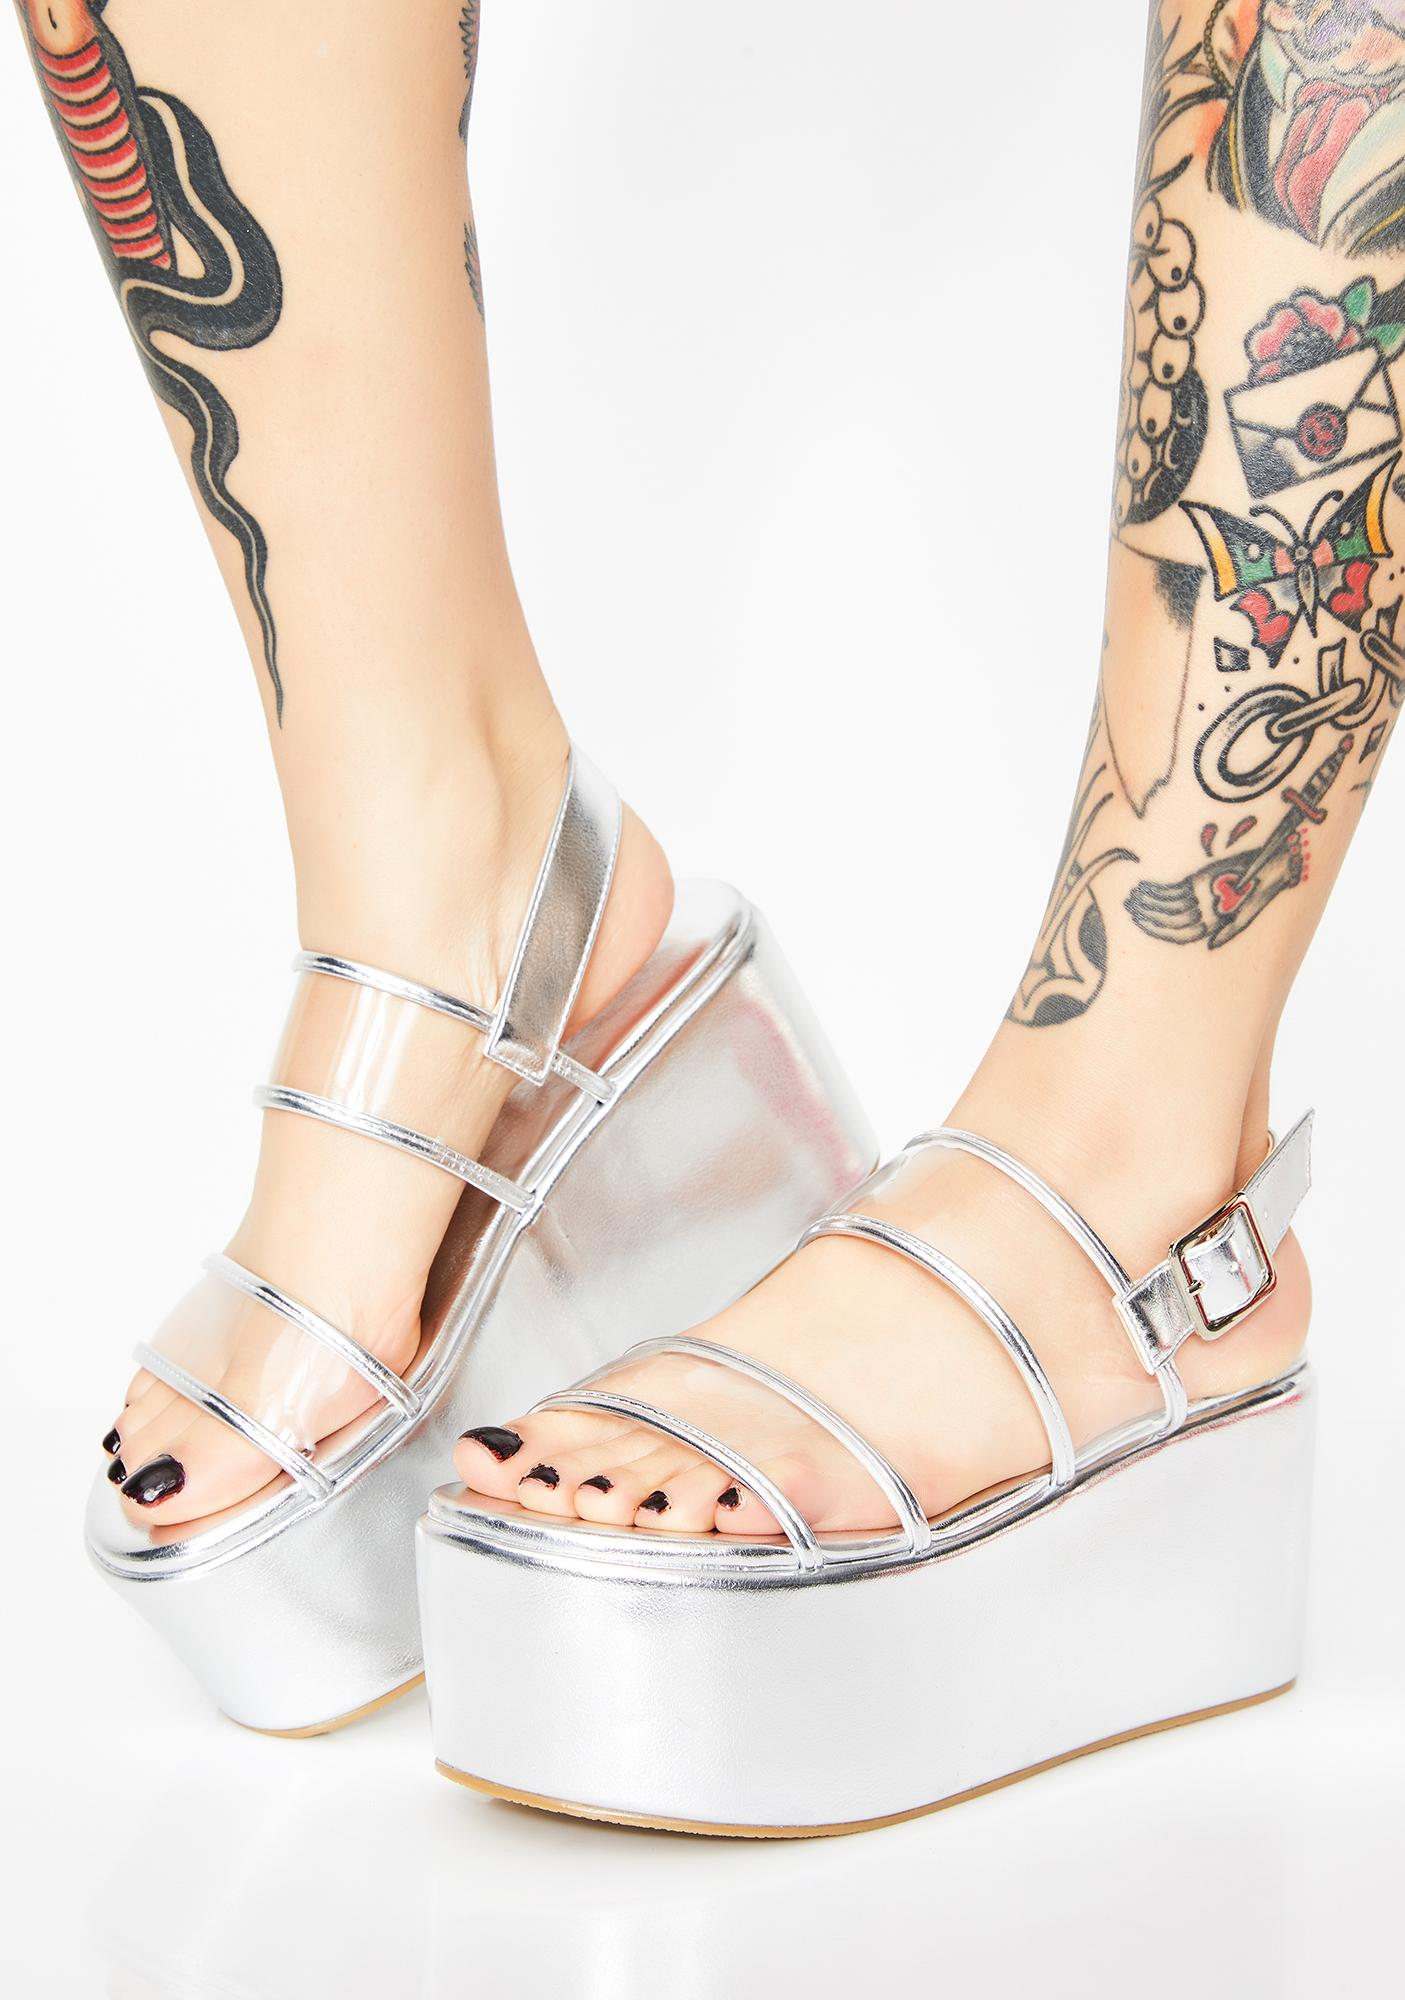 Chrome Step Aside Platform Sandals